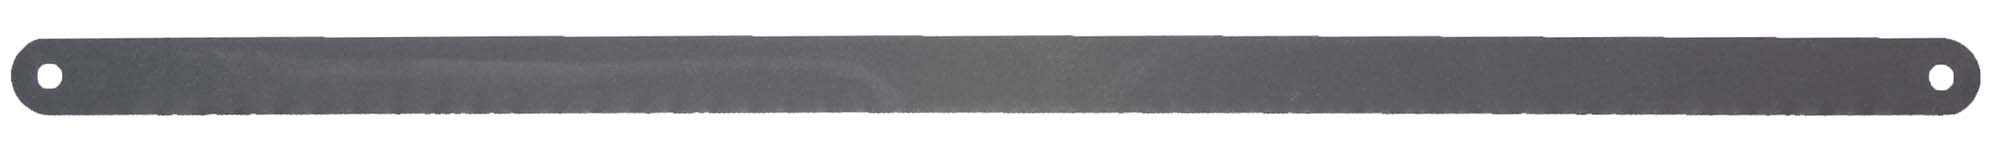 12 X 1/2 X 24T High Speed Steel USA Hacksaw Blade